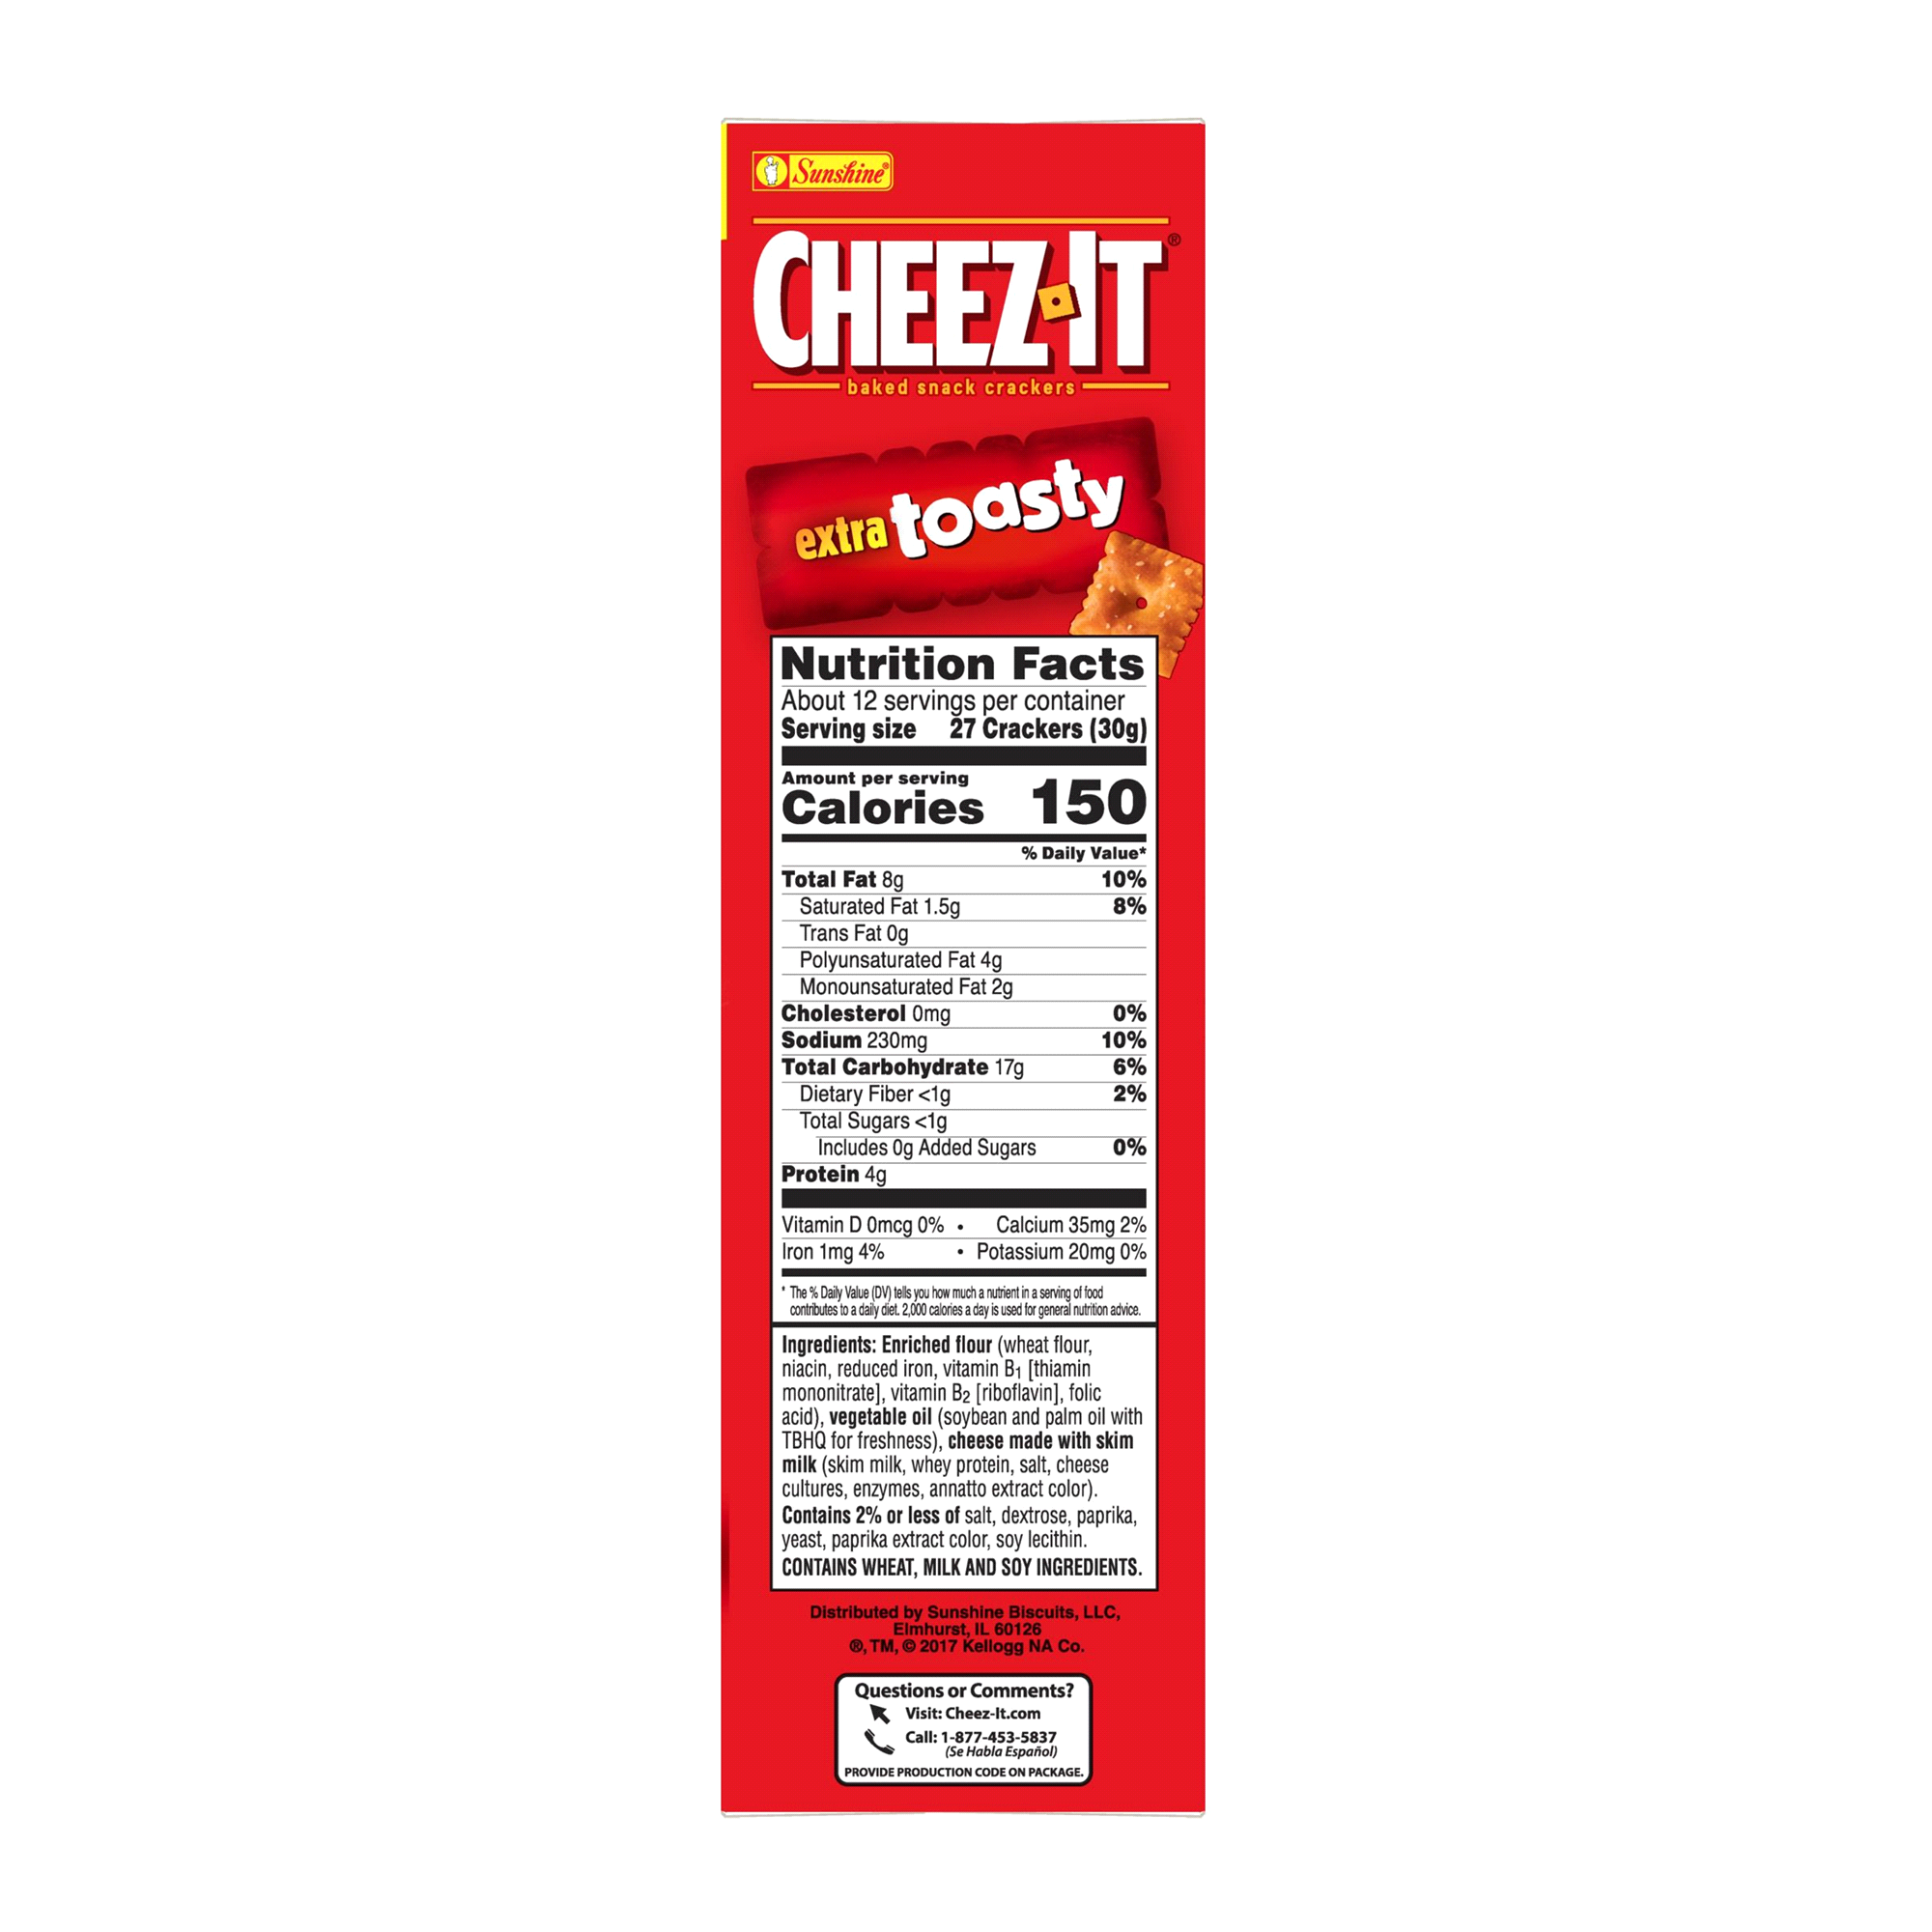 cheez-it extra toasty 12.4 oz | meijer